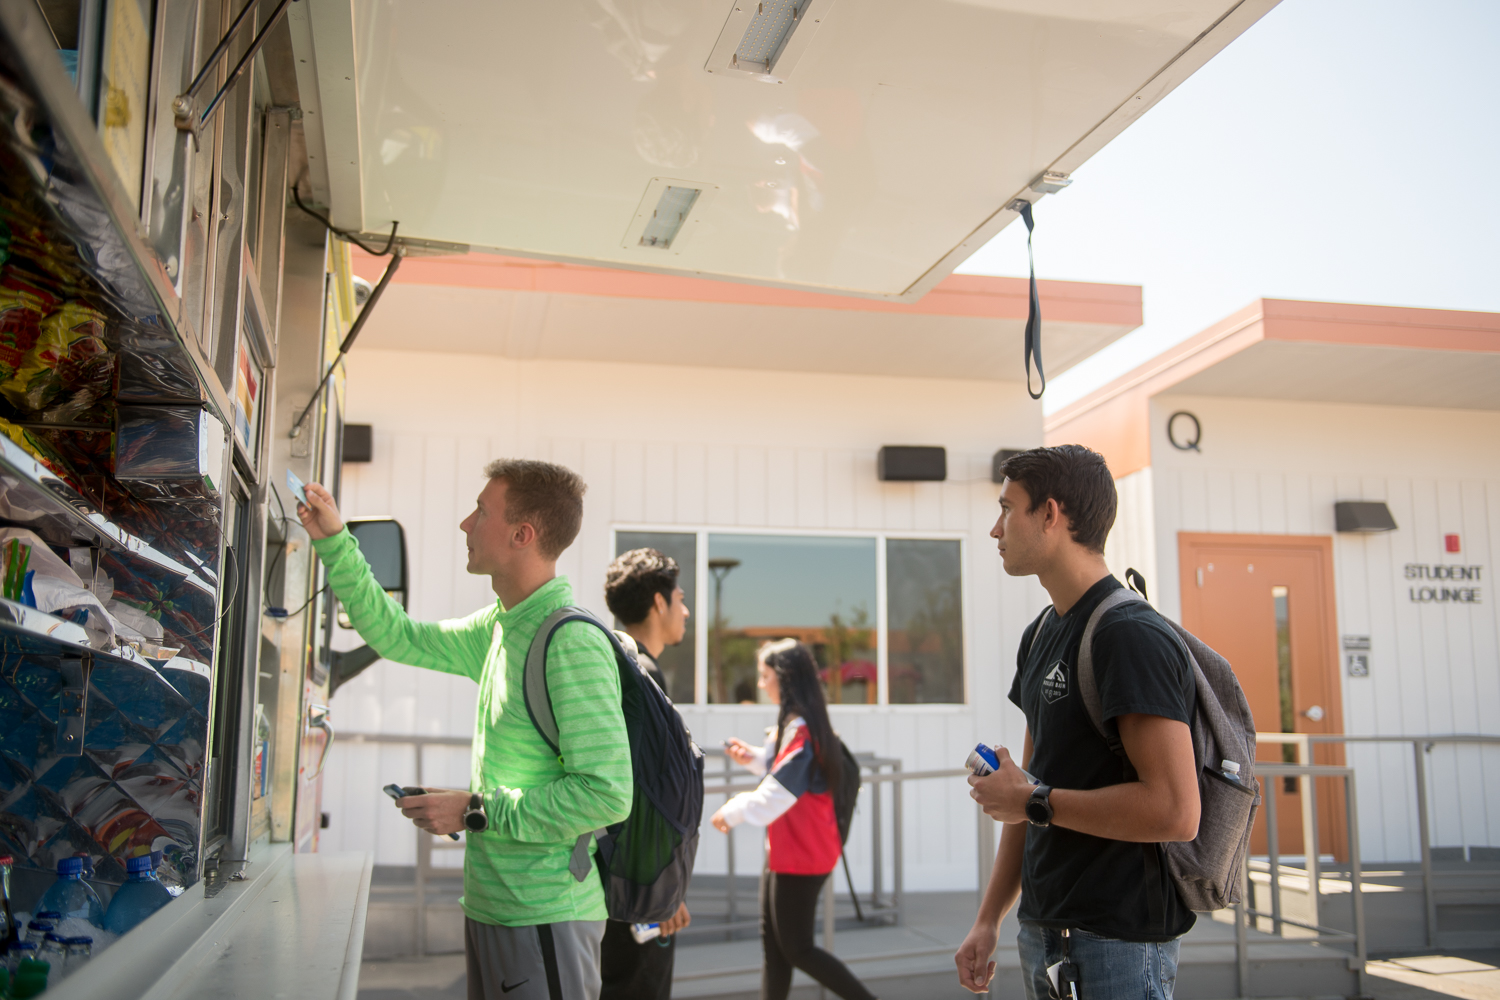 Students ordering lunch from a food truck